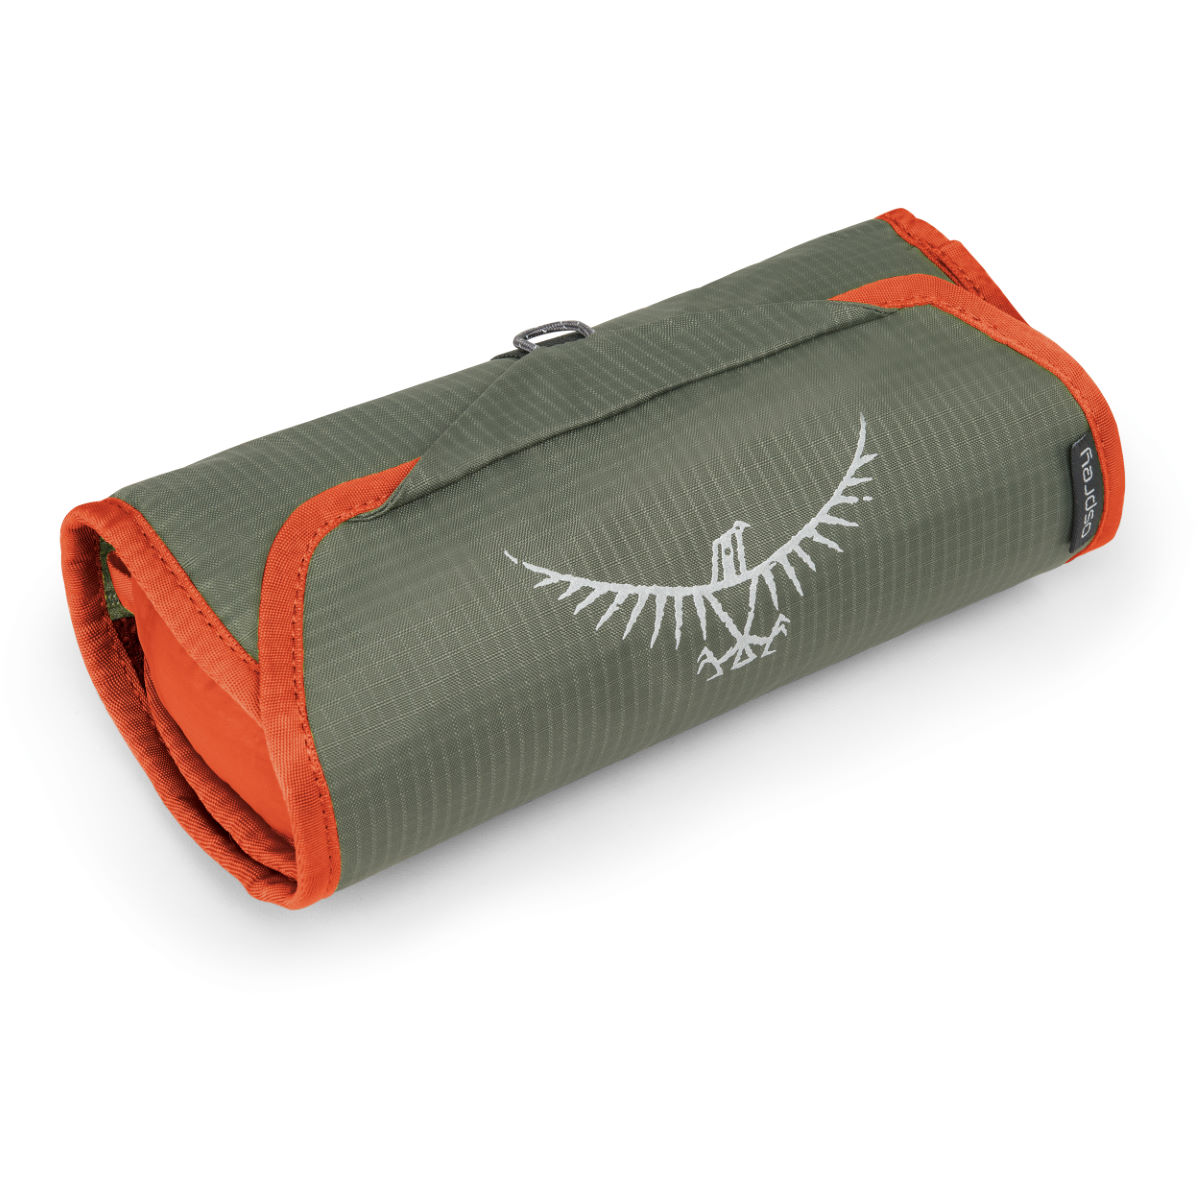 Neceser enrollable Osprey Washbag Roll - Bolsas de viaje